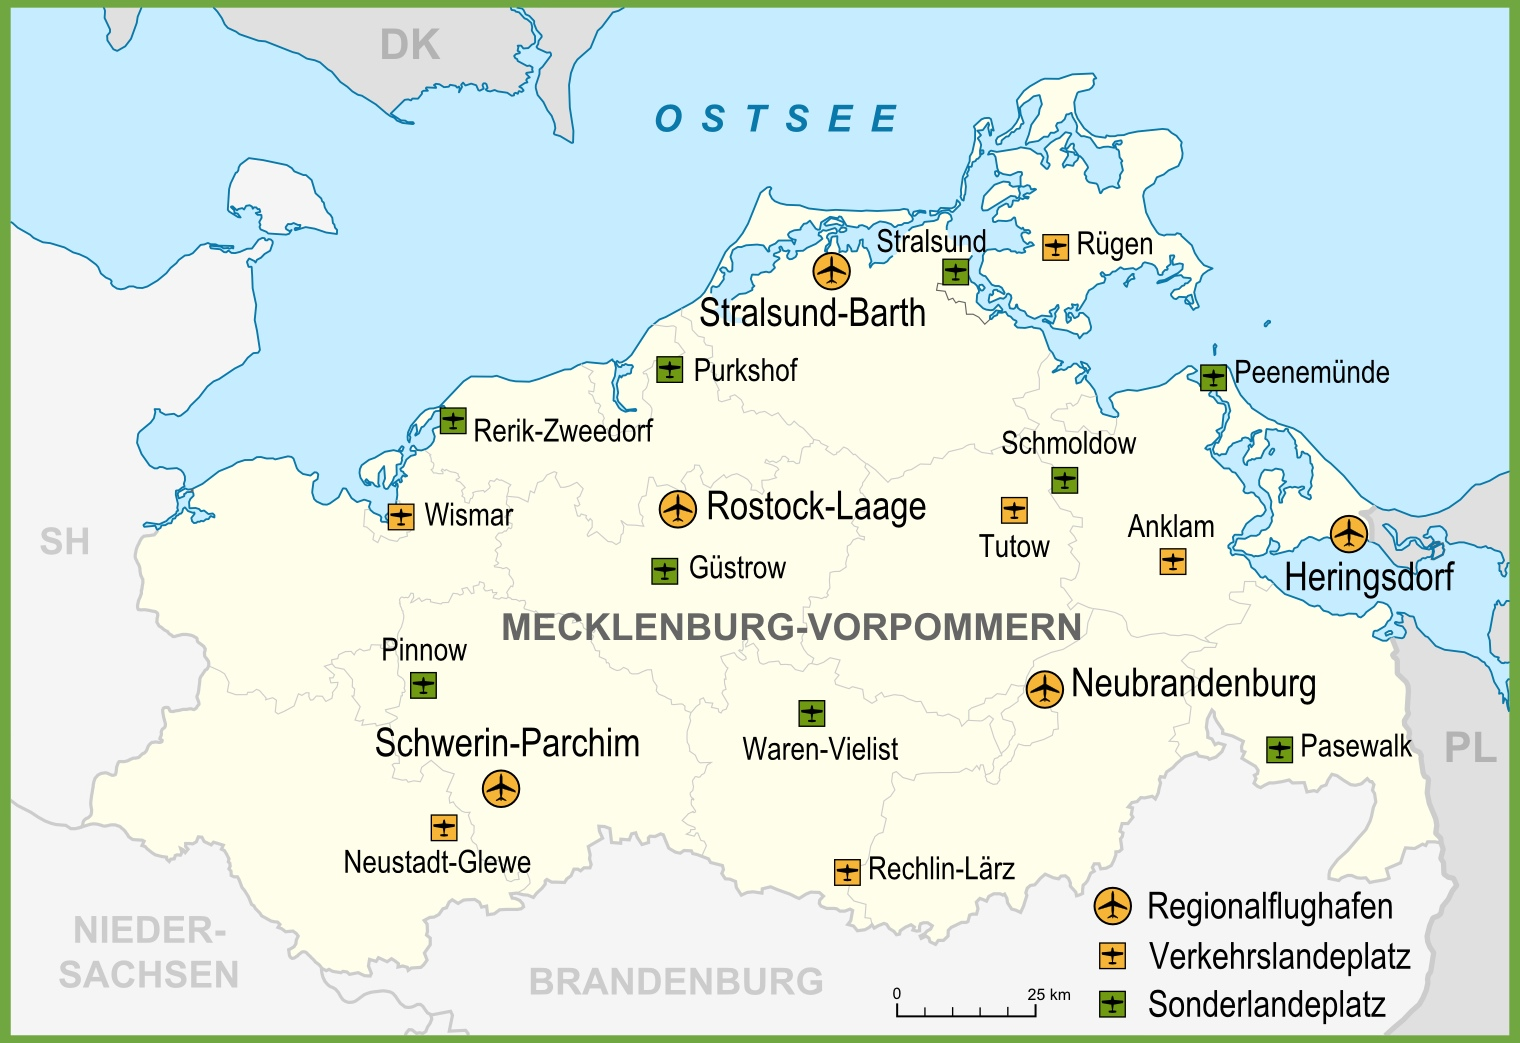 Map of airports in MecklenburgVorpommern